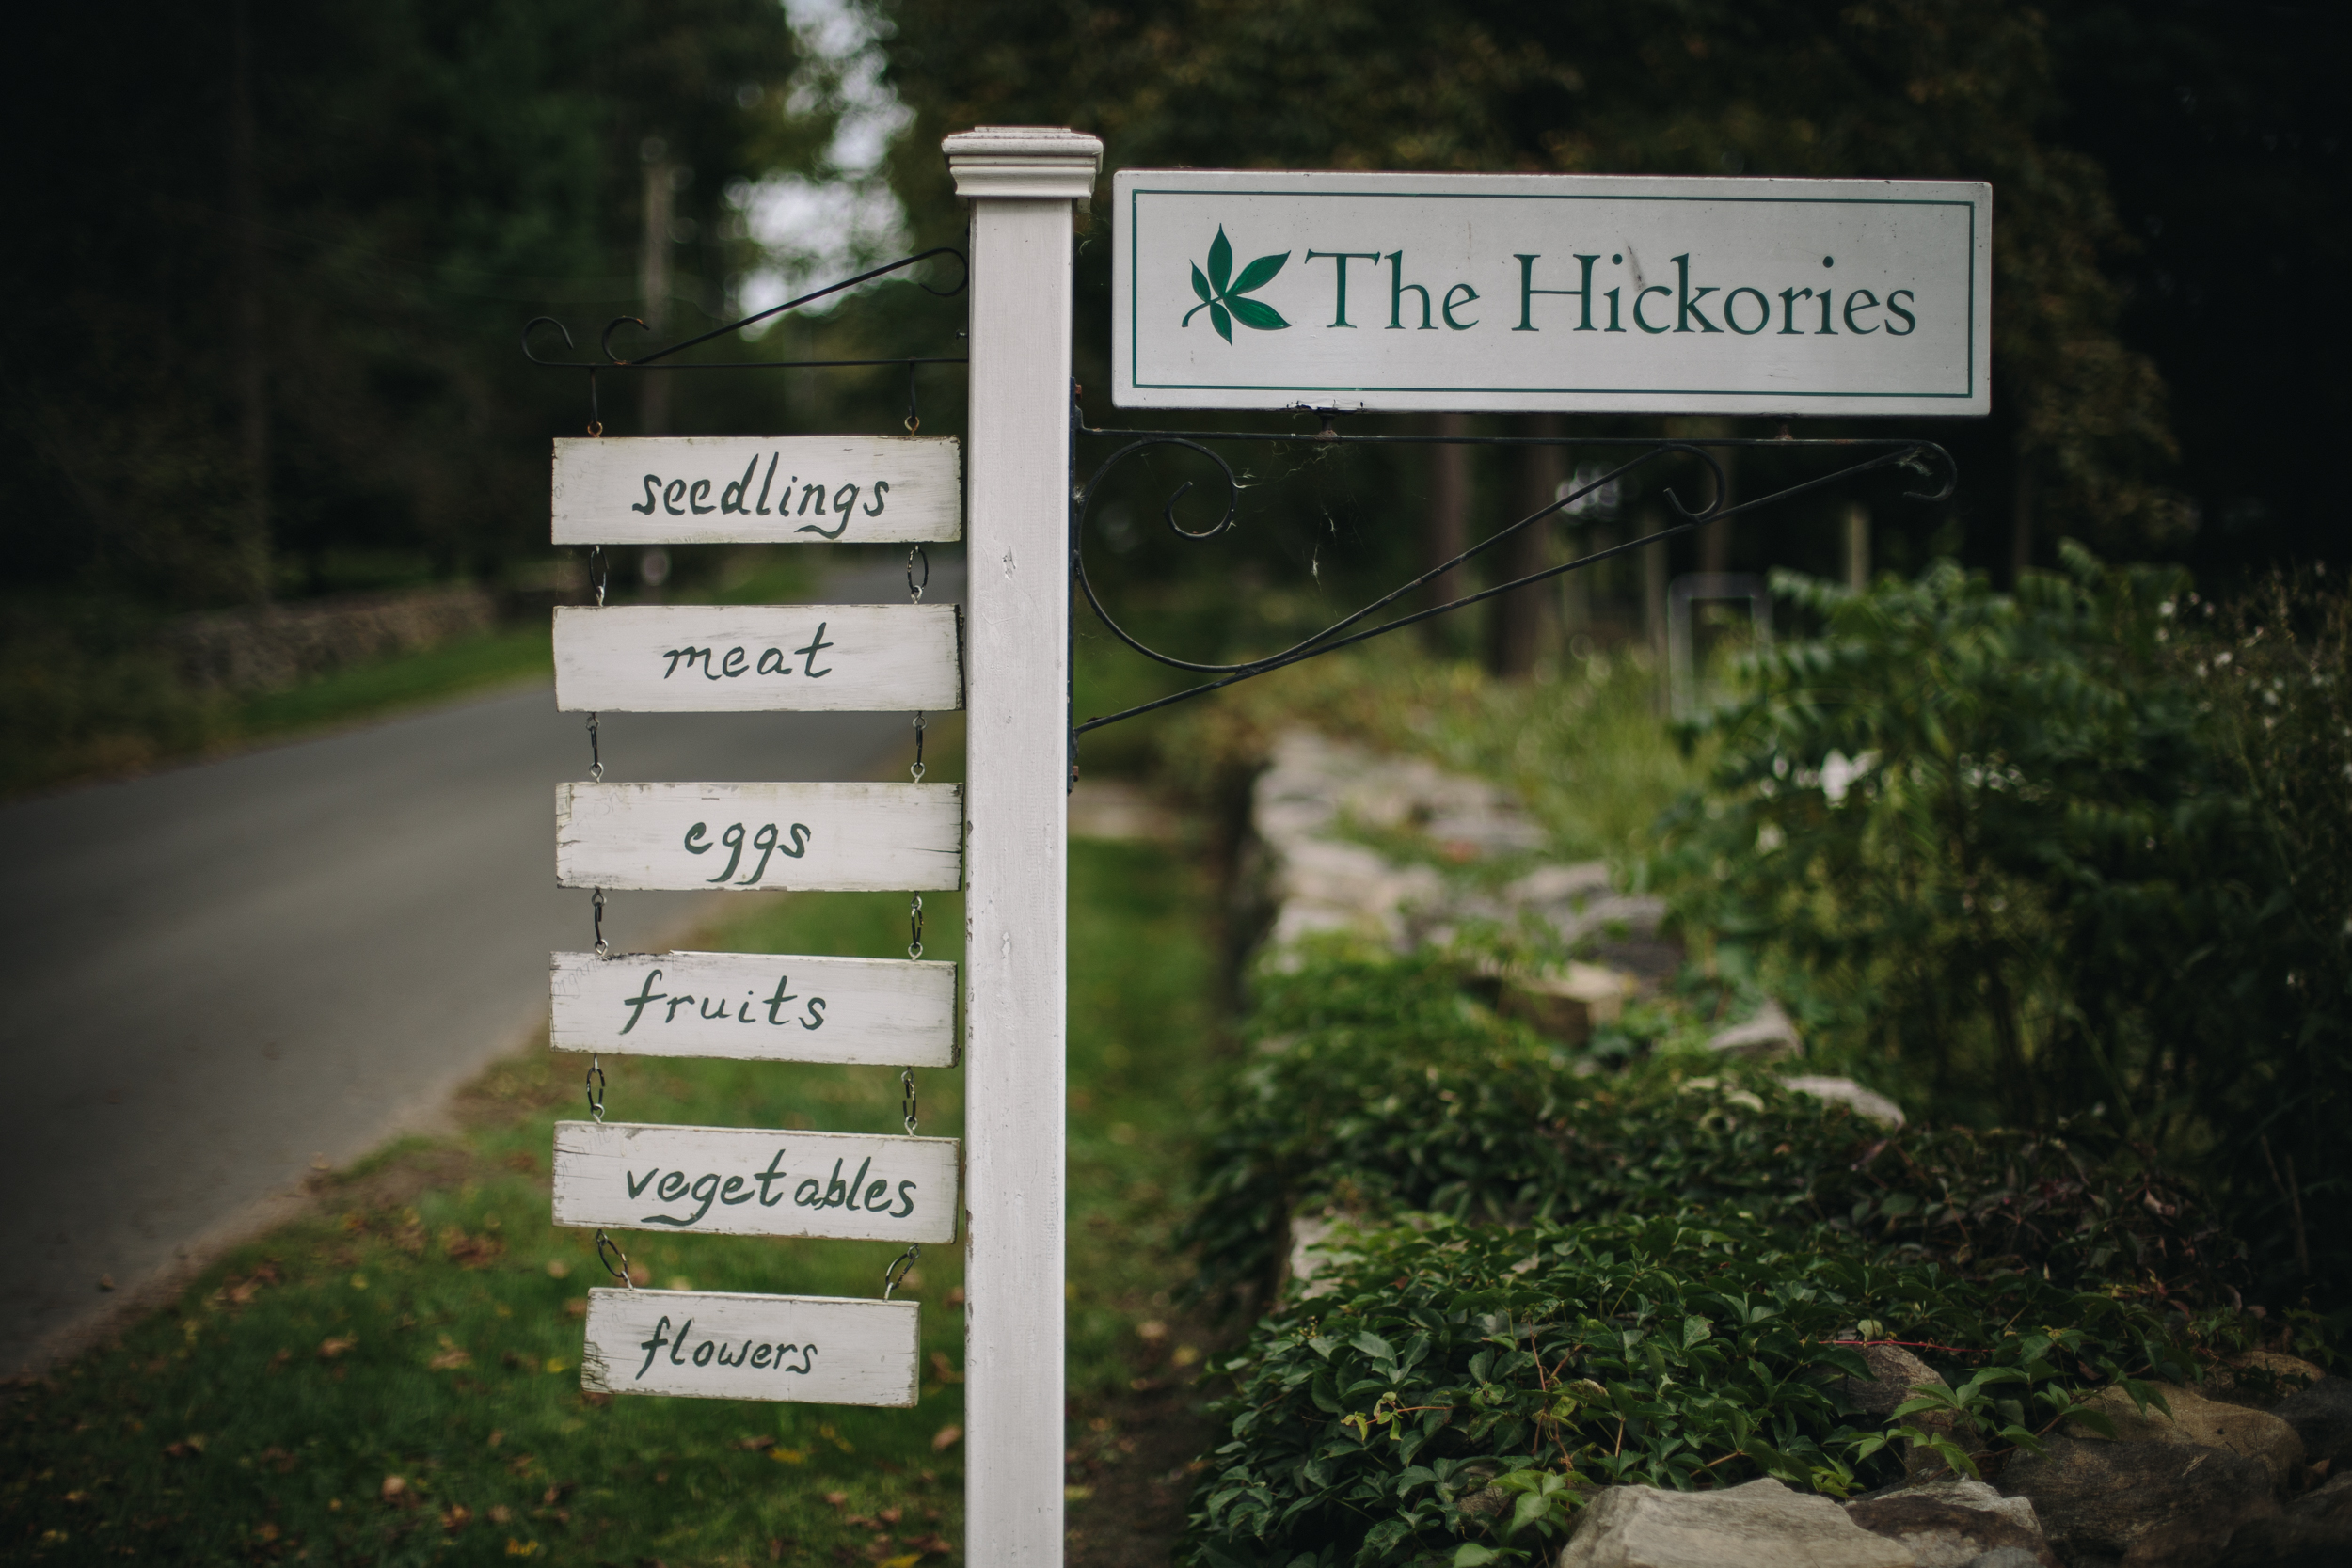 thehickories-5.jpg